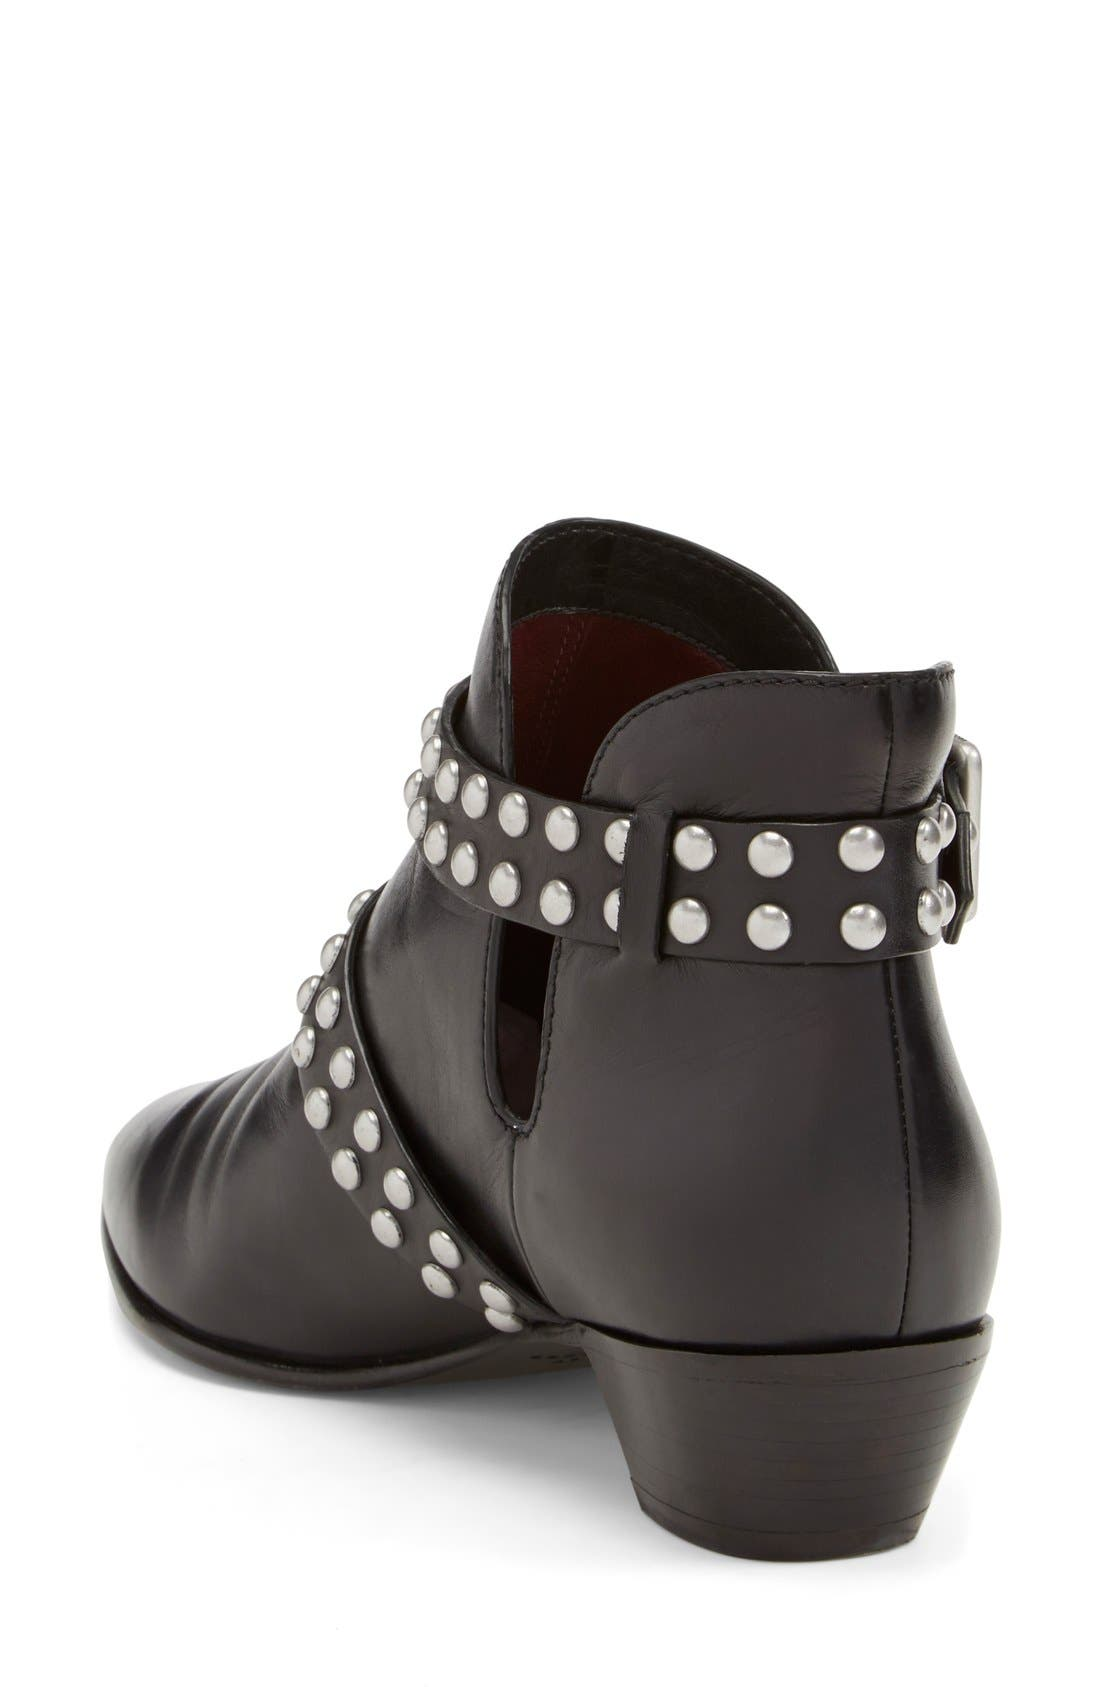 MARC BY MARC JACOBS 'Carroll' Studded Leather Pointy Toe Ankle Boot,                             Alternate thumbnail 5, color,                             001